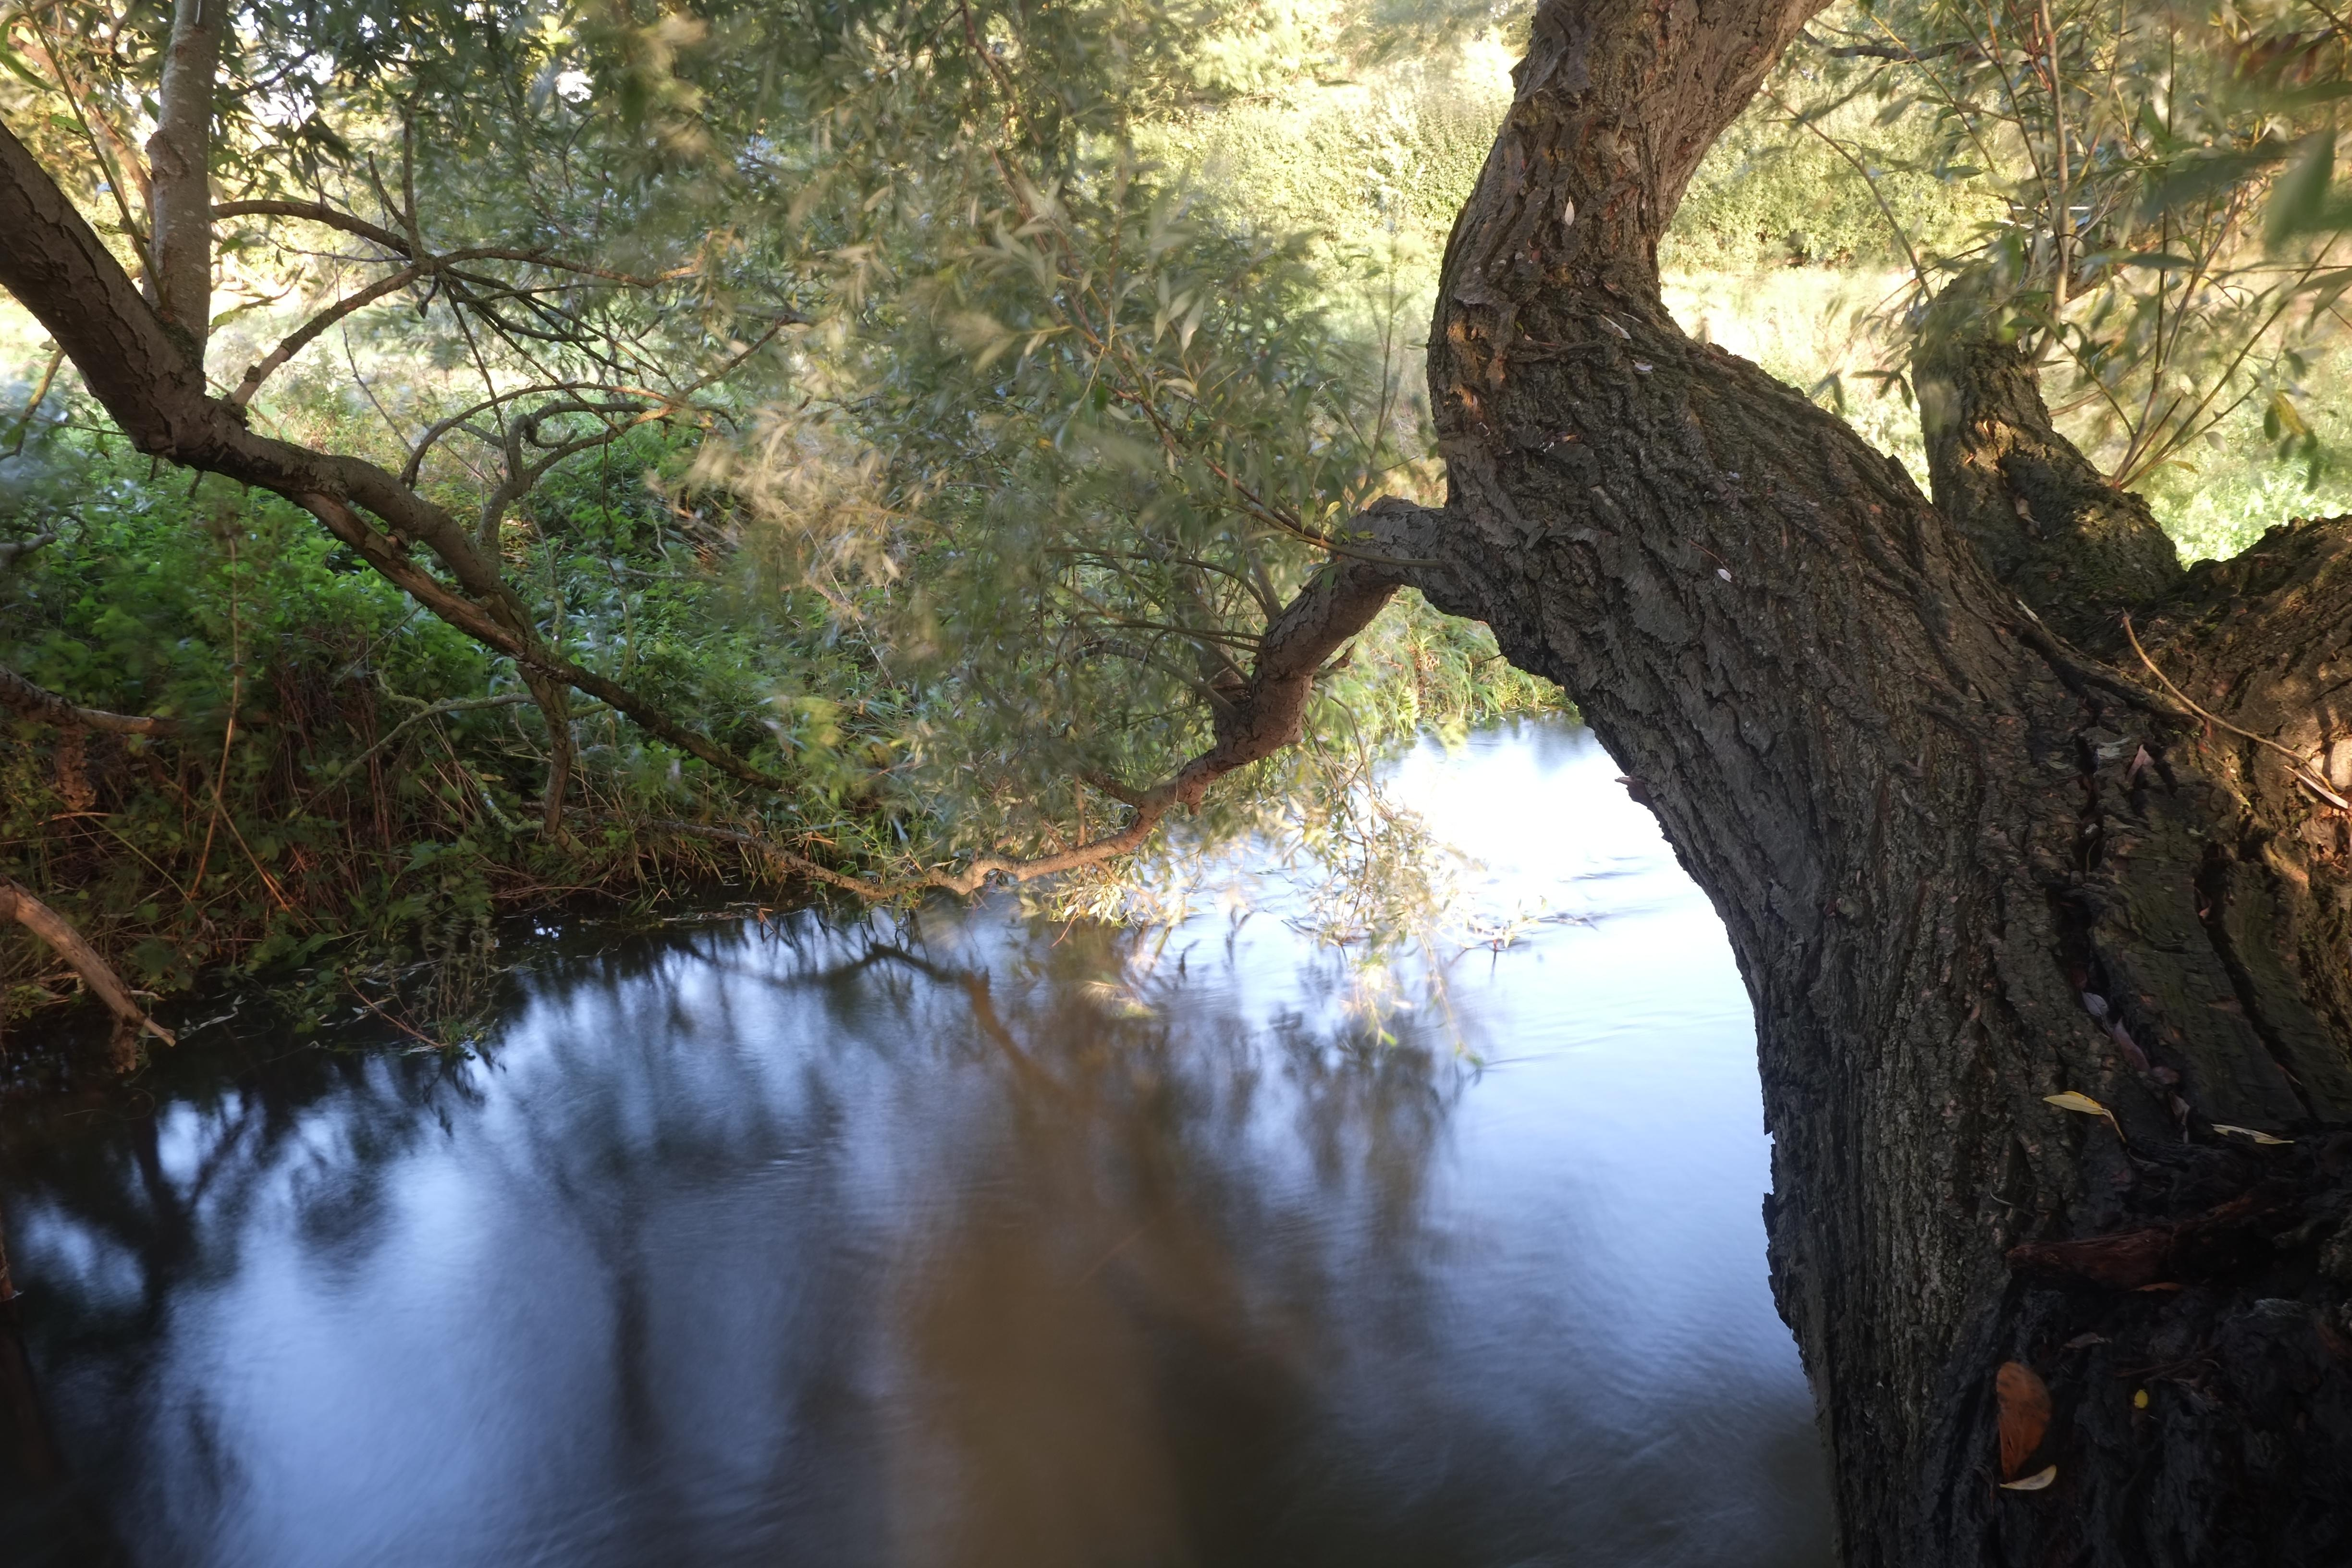 Country diary: where old willows lean